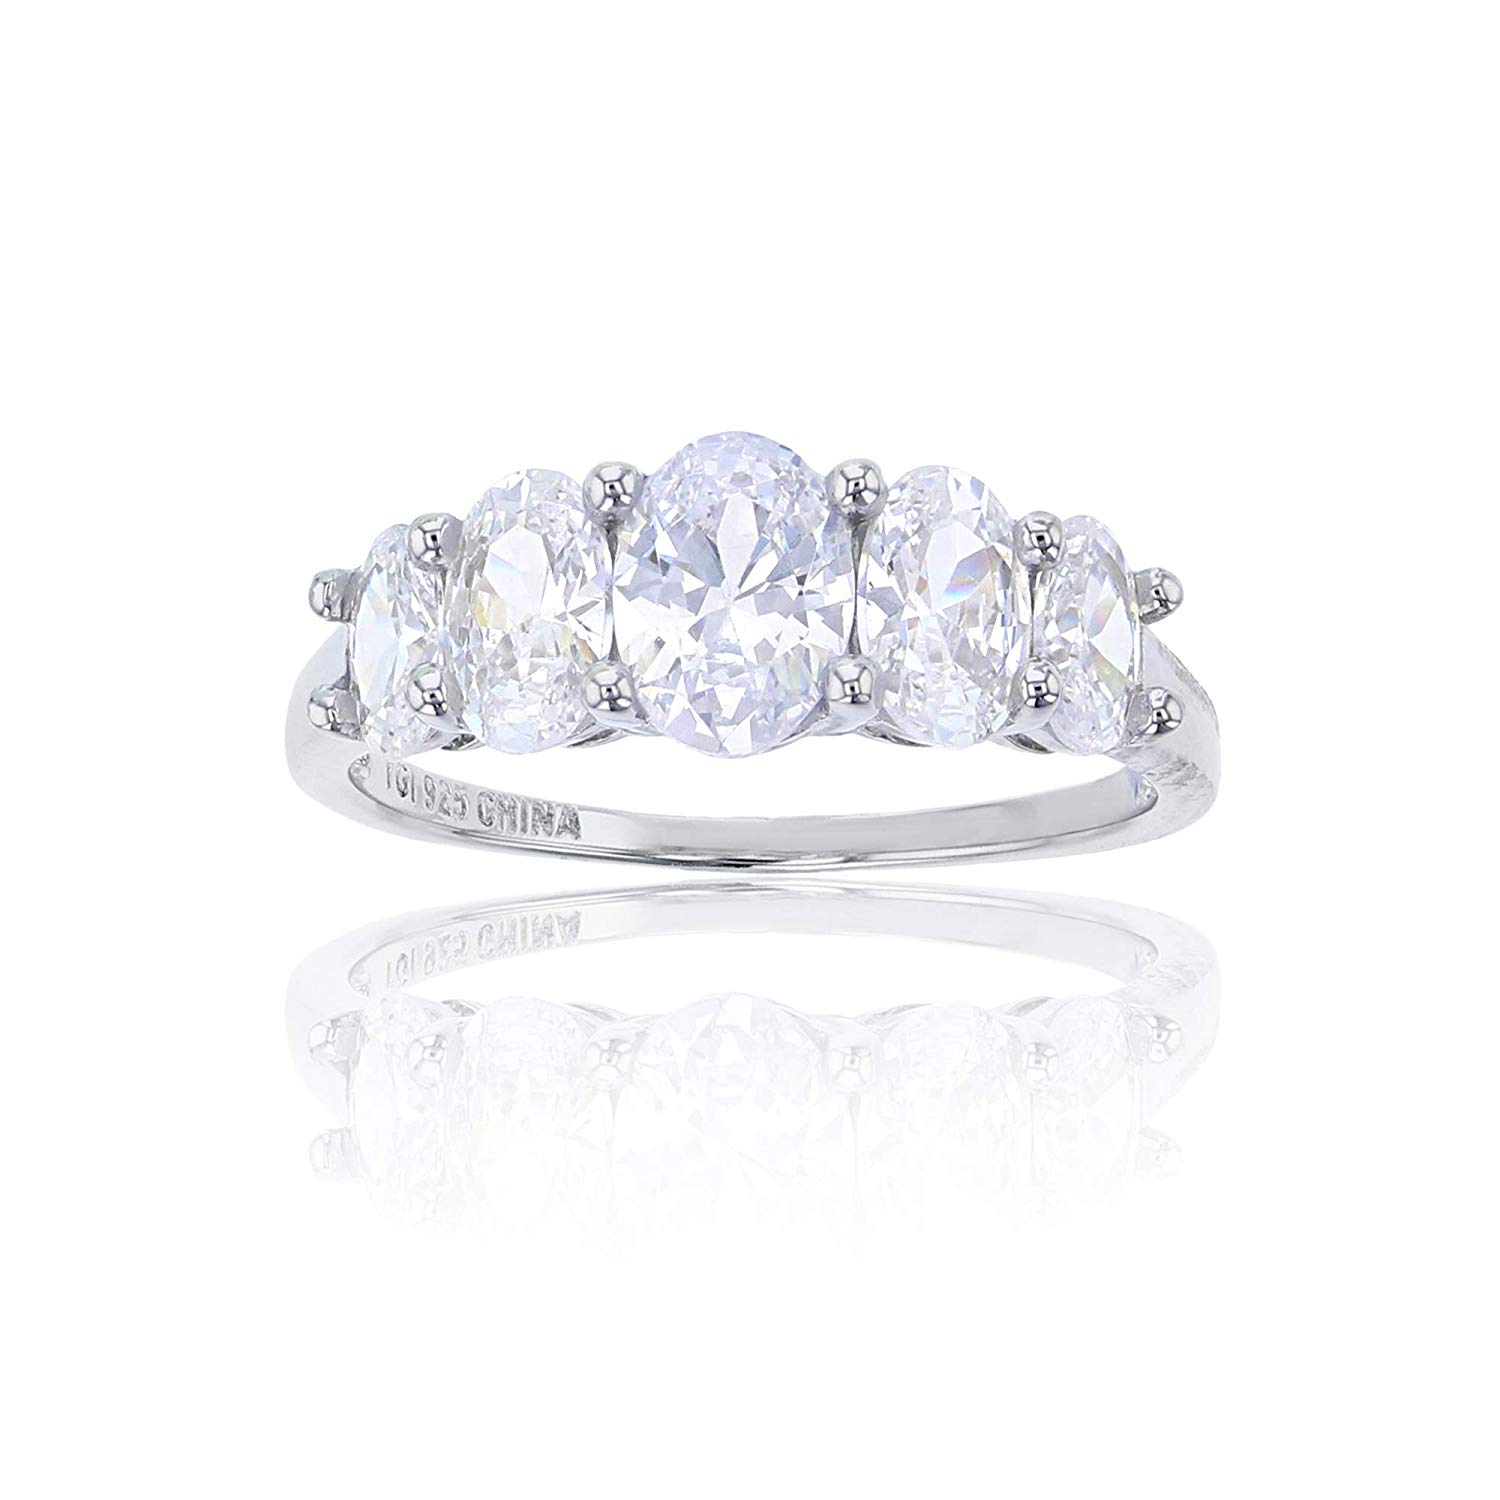 Princess Kylie Clear Cubic Zirconia Sideway Heart Shaped Ring Rhodium Plated Sterling Silver